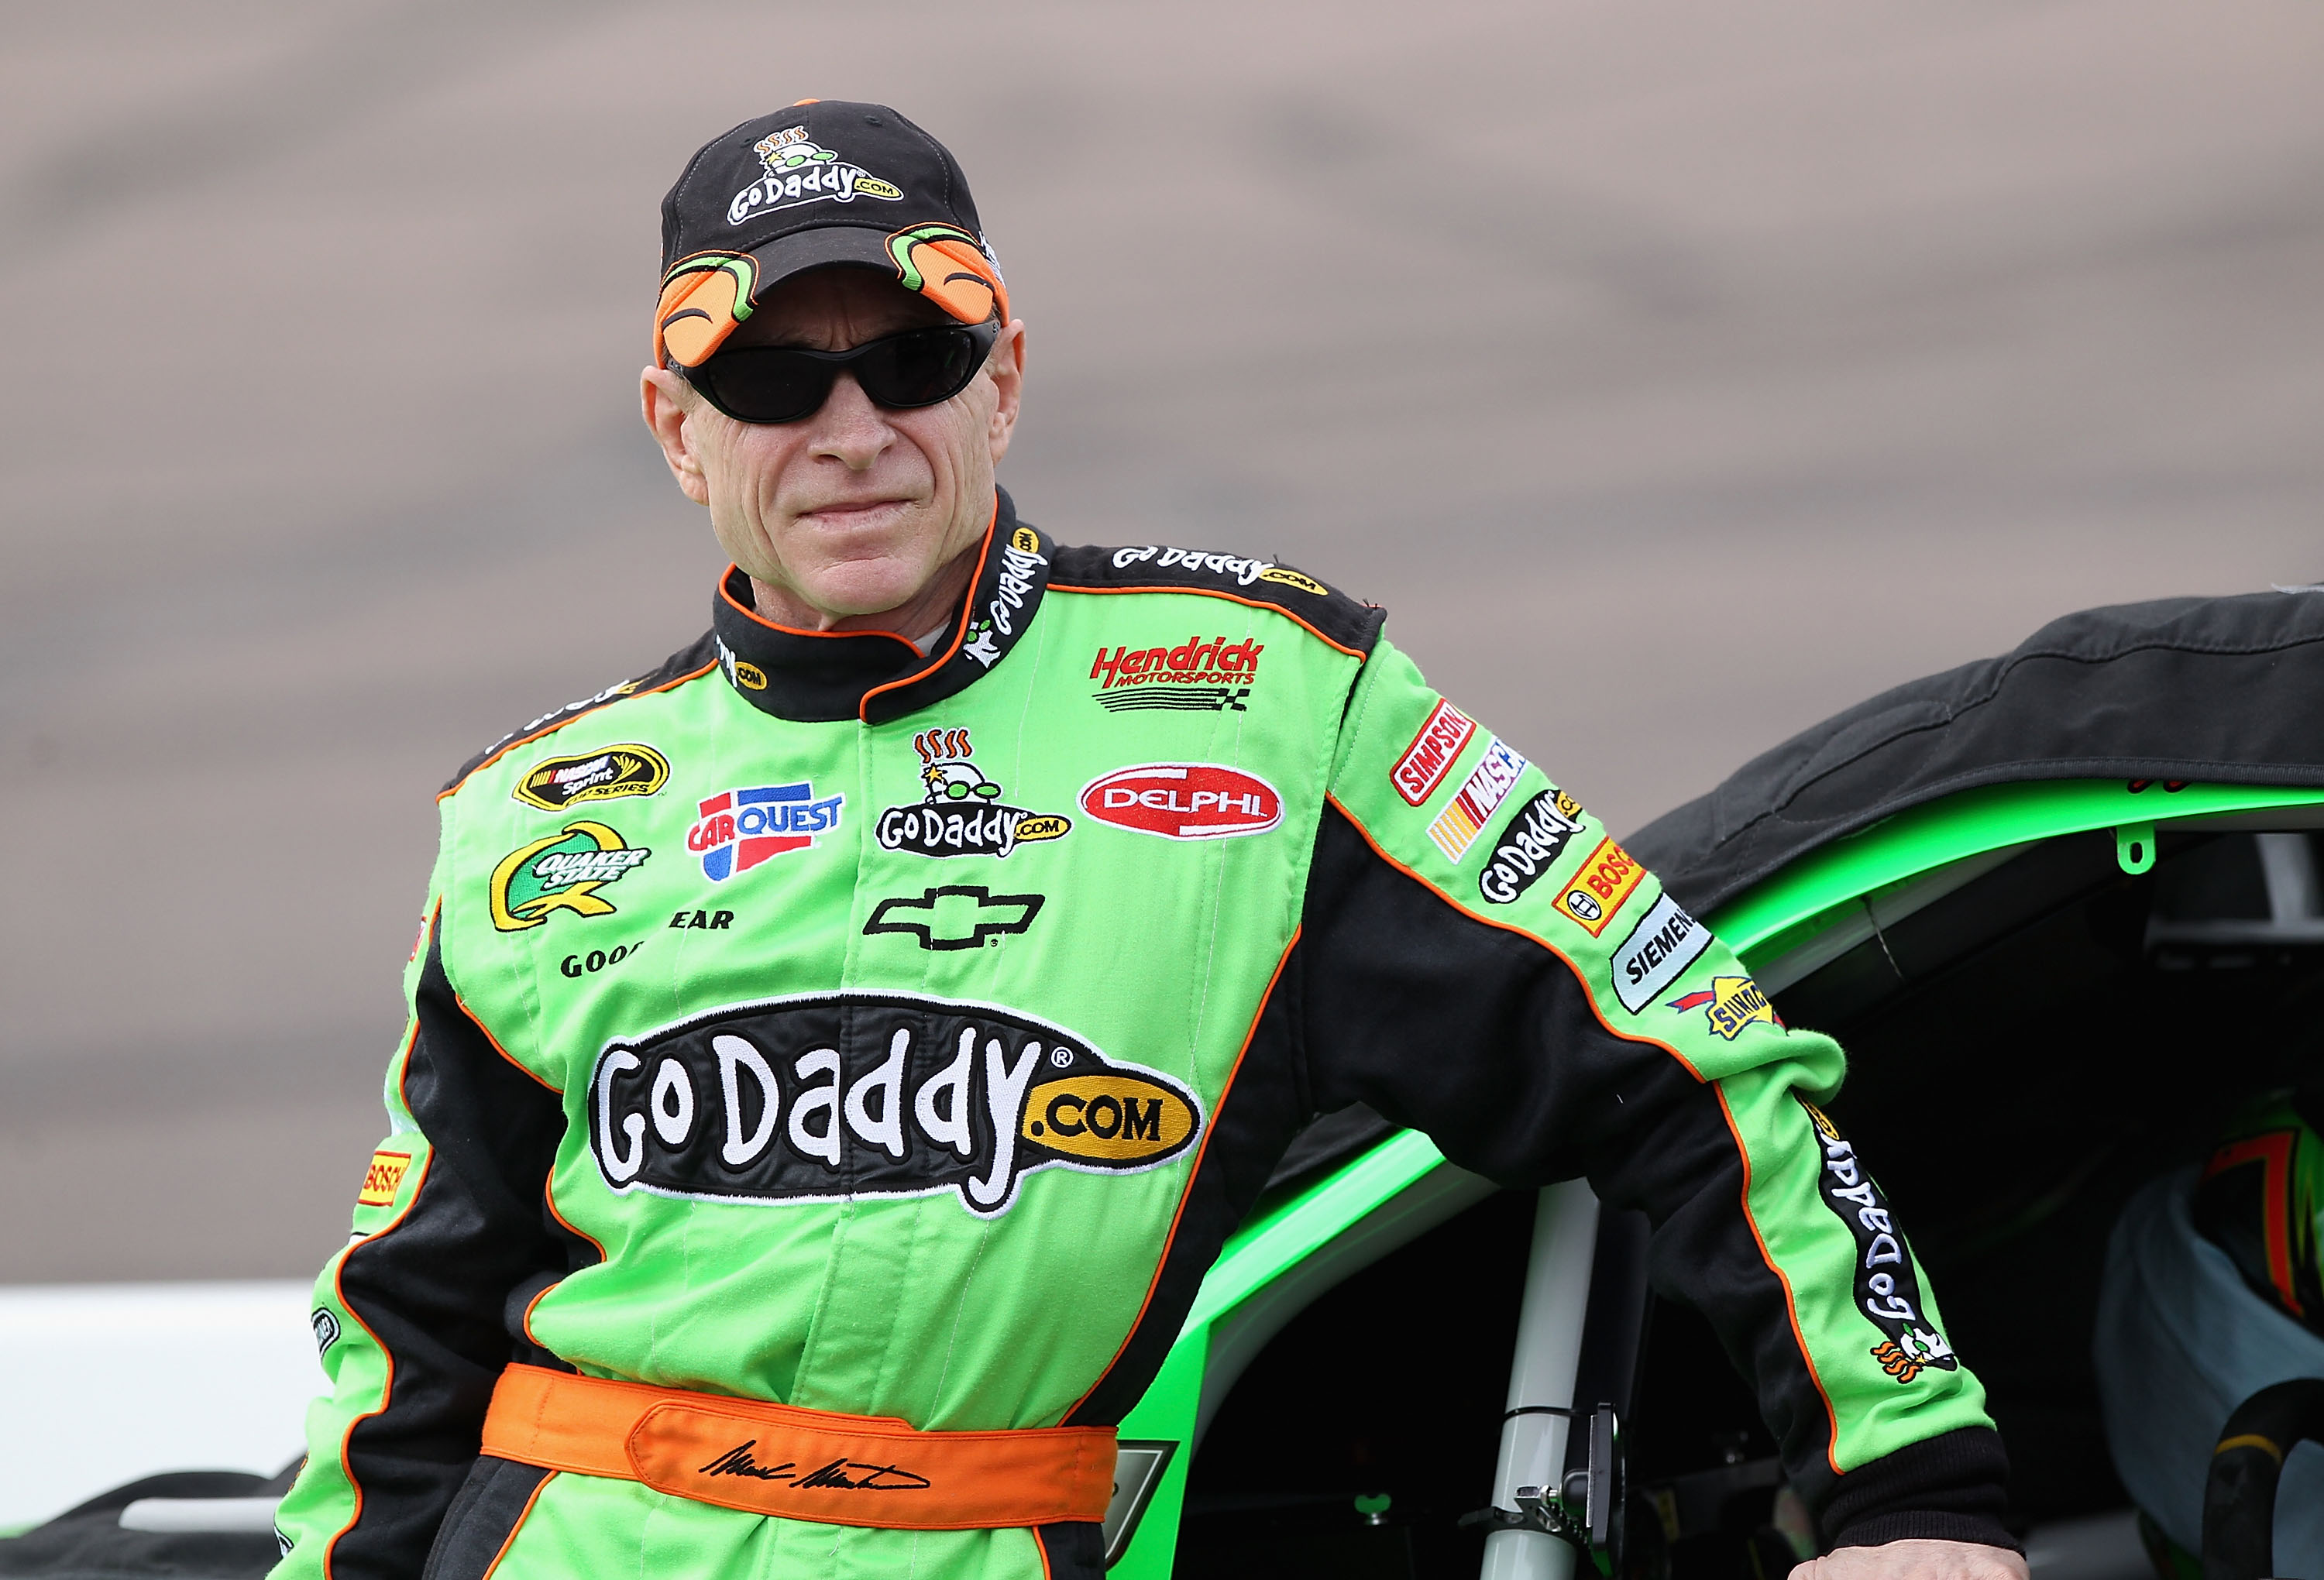 AVONDALE, AZ - FEBRUARY 26:  Mark Martin, driver of the #5 GoDaddy.com Chevrolet, stands on pit road during qualifying for the NASCAR Sprint Cup Series Subway Fresh Fit 500 at Phoenix International Raceway on February 26, 2011 in Avondale, Arizona.  (Phot